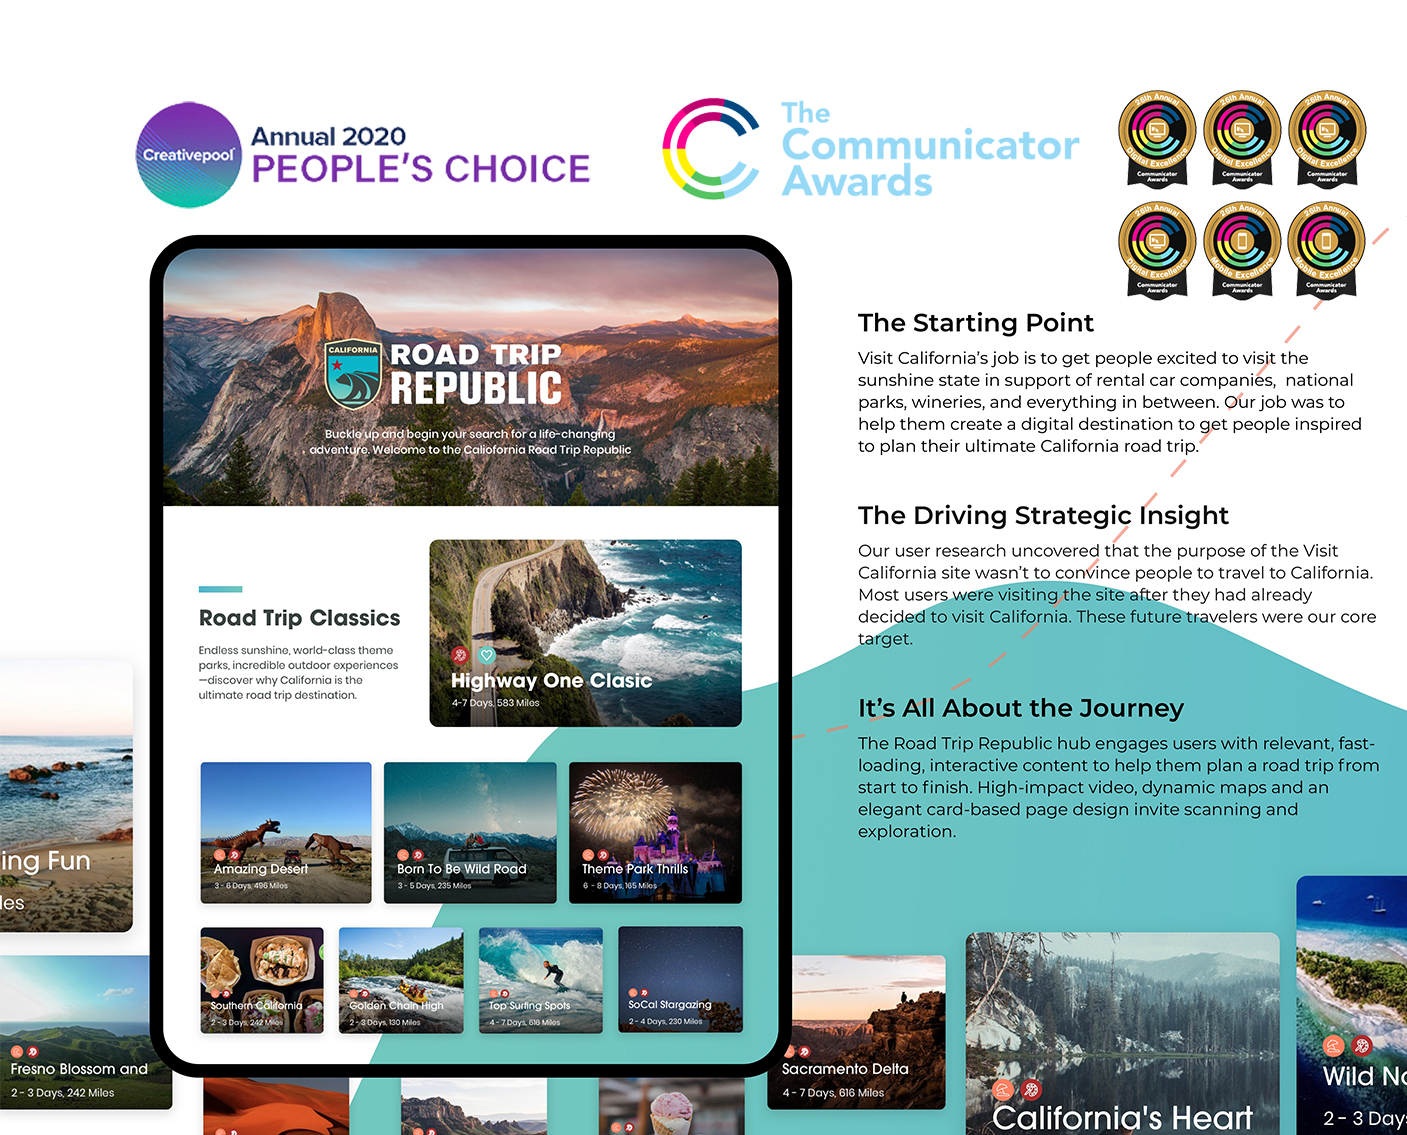 Visit California Responsive Preview, 6 Communicator Awards, Creativepool The People's Choice Award.